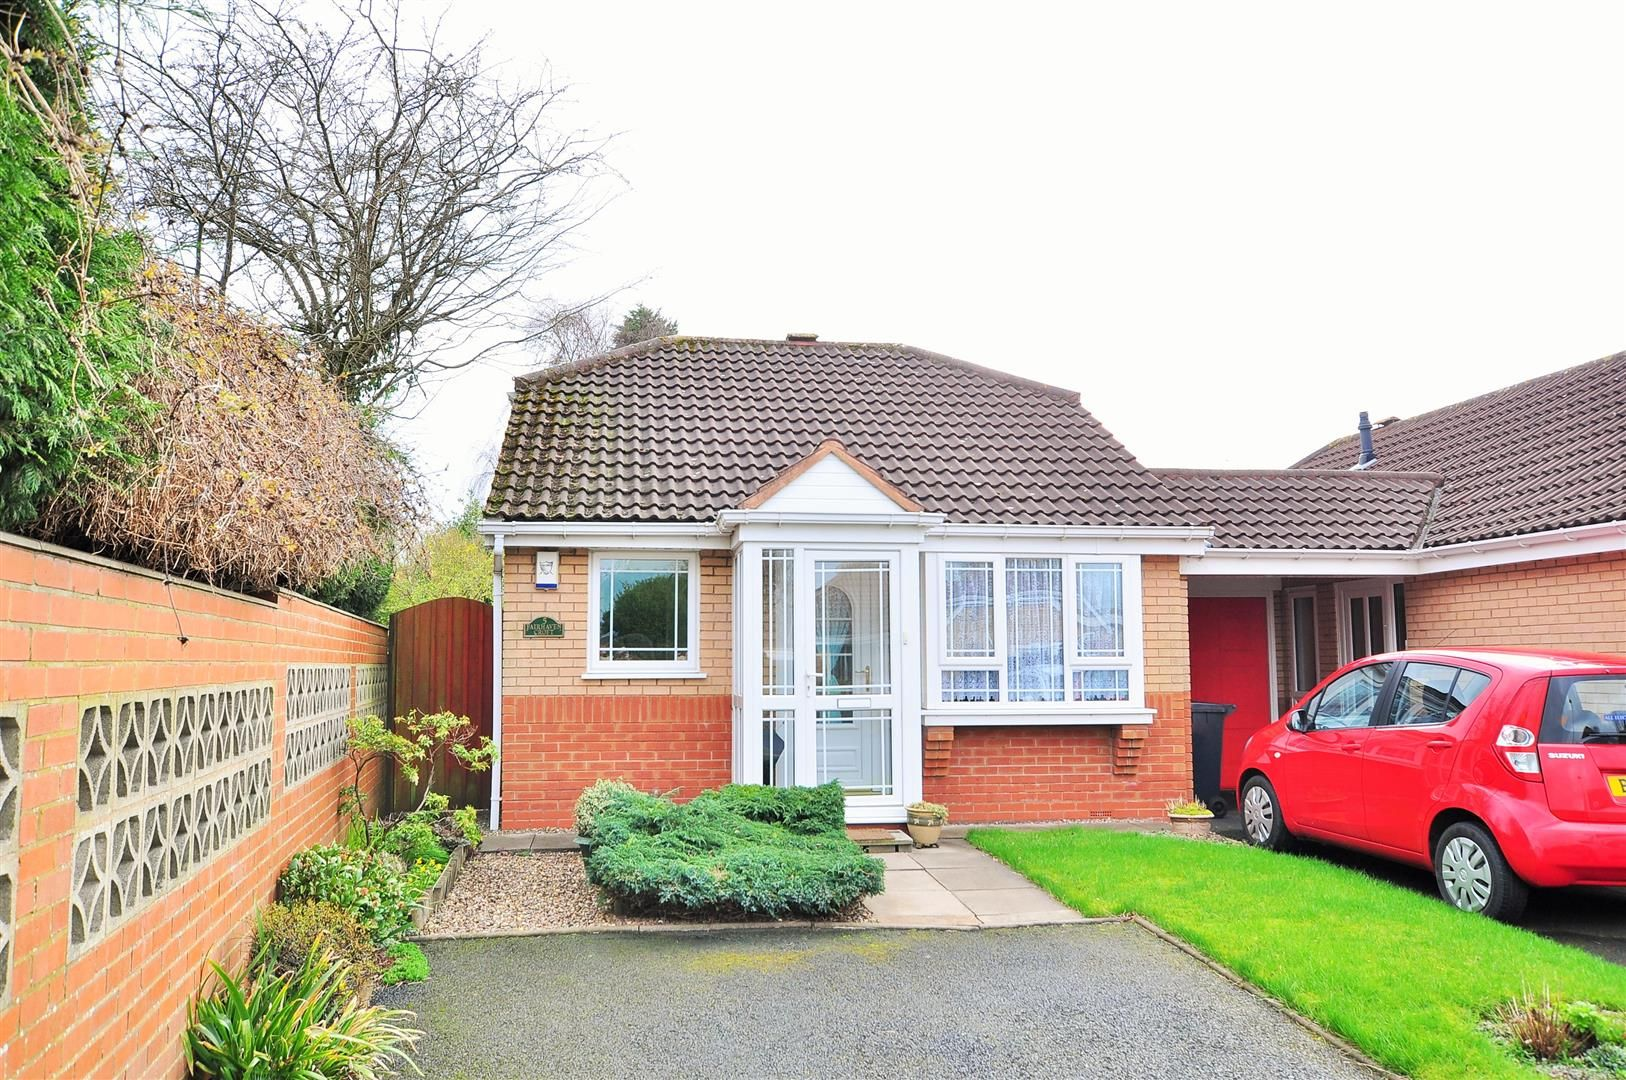 2 bed detached-bungalow for sale in Hurst Green 12